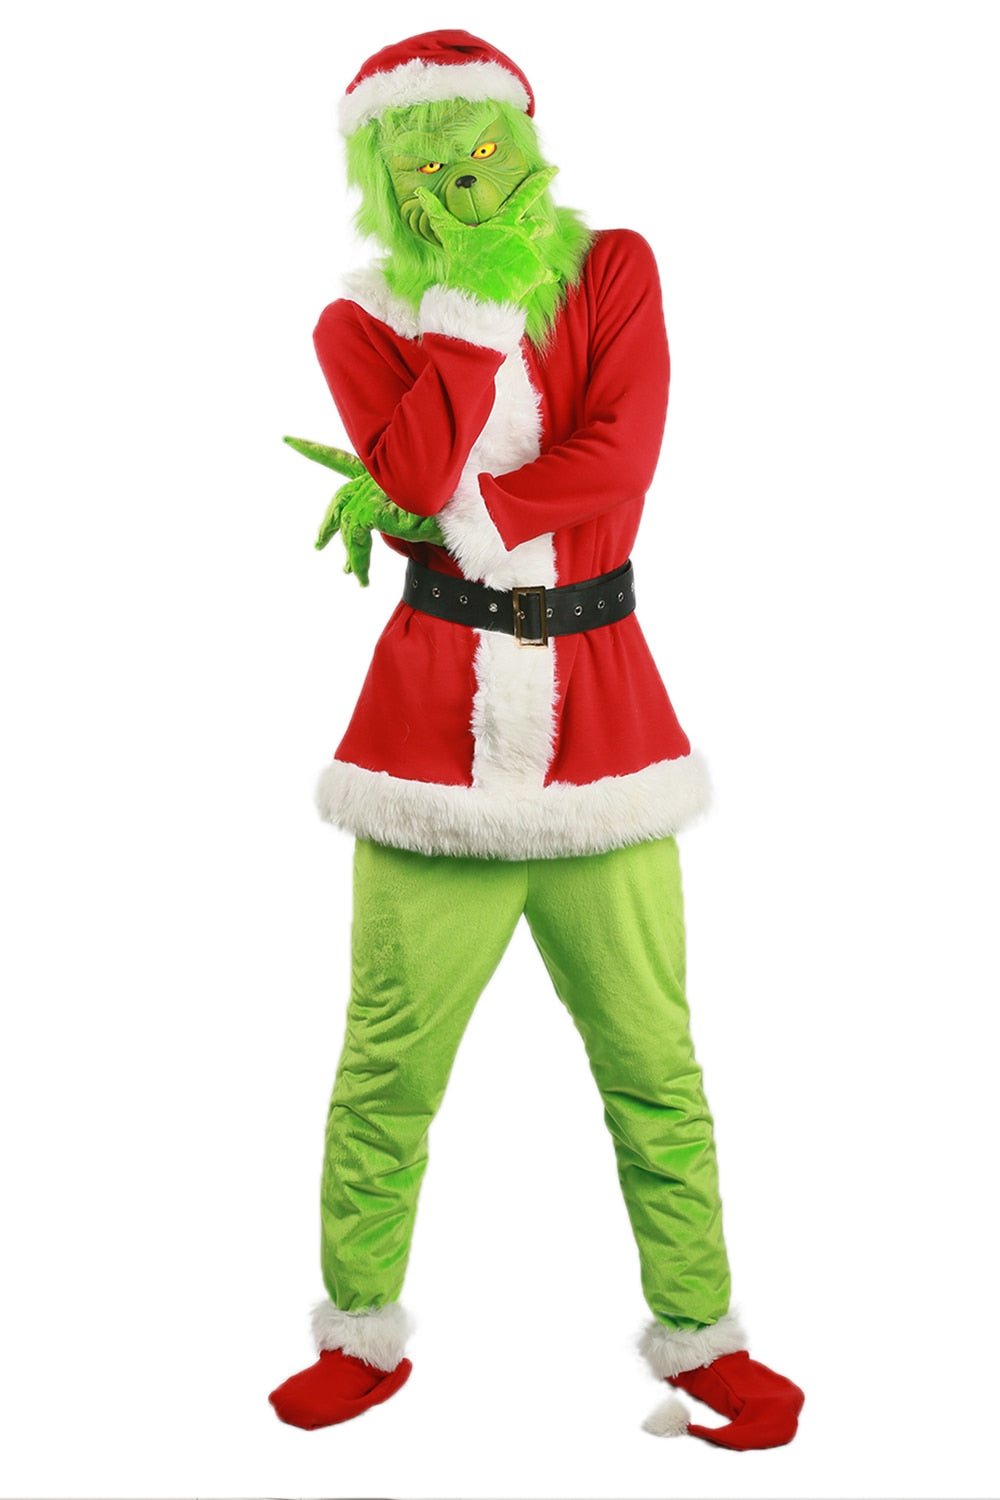 Original Christmas Grumpy Costume